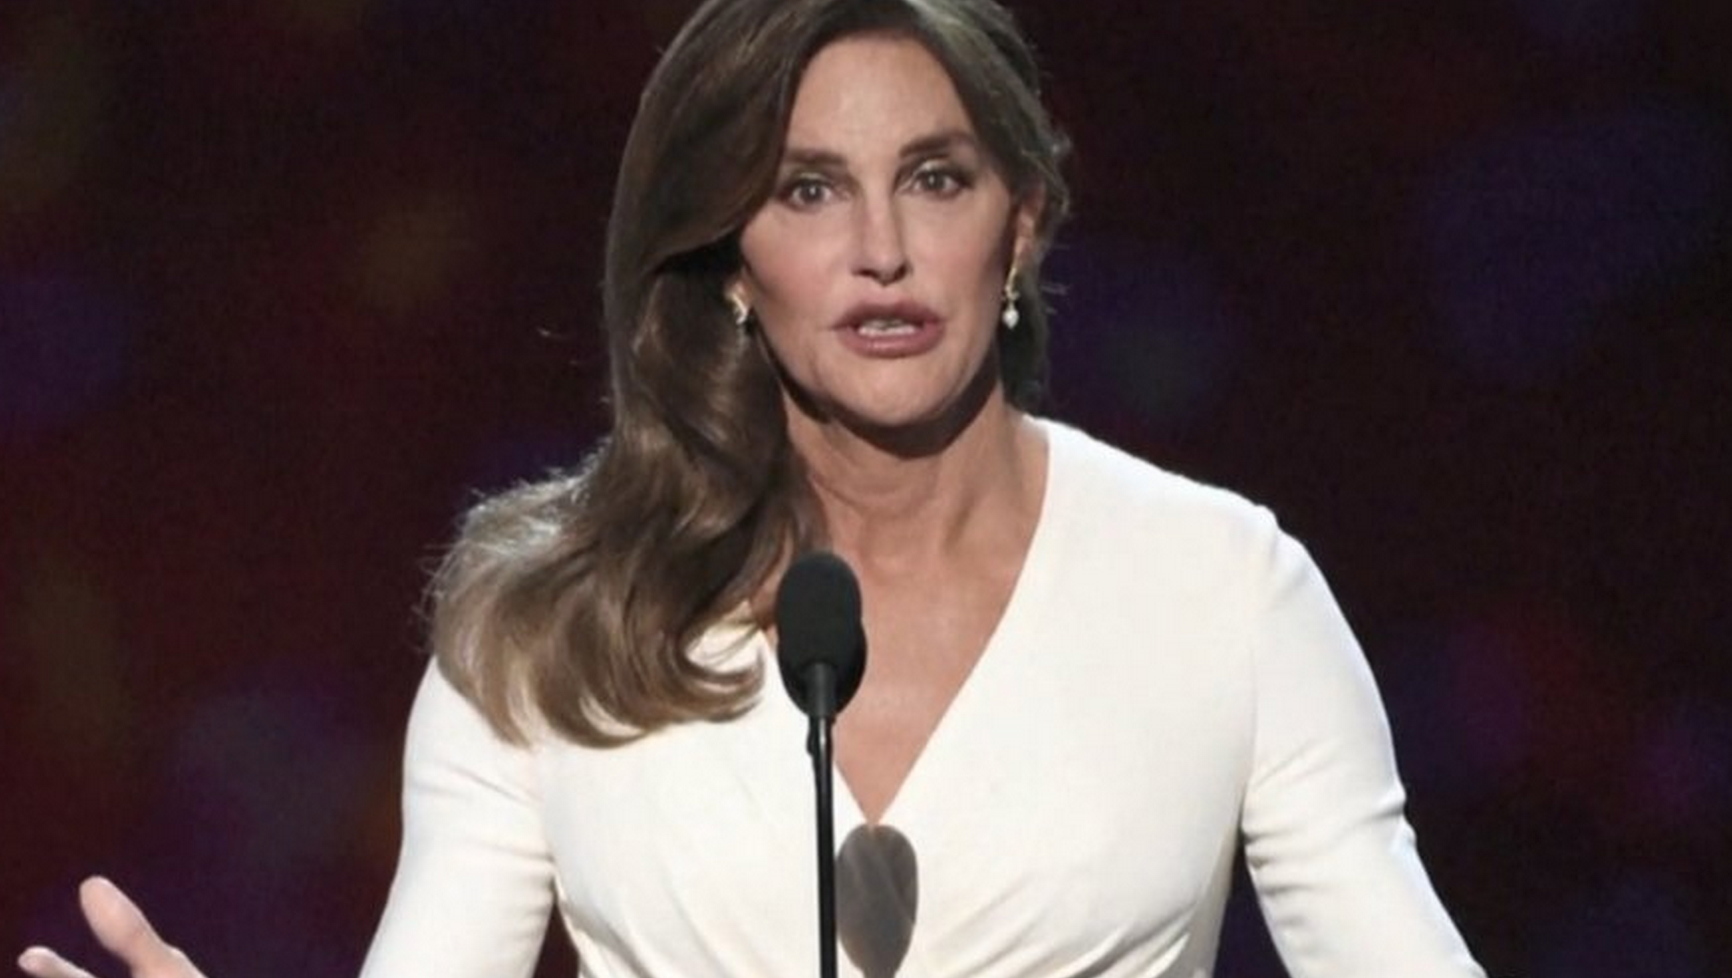 Caitlyn Jenner to pose nude to mark 40th anniversary of Olympic win